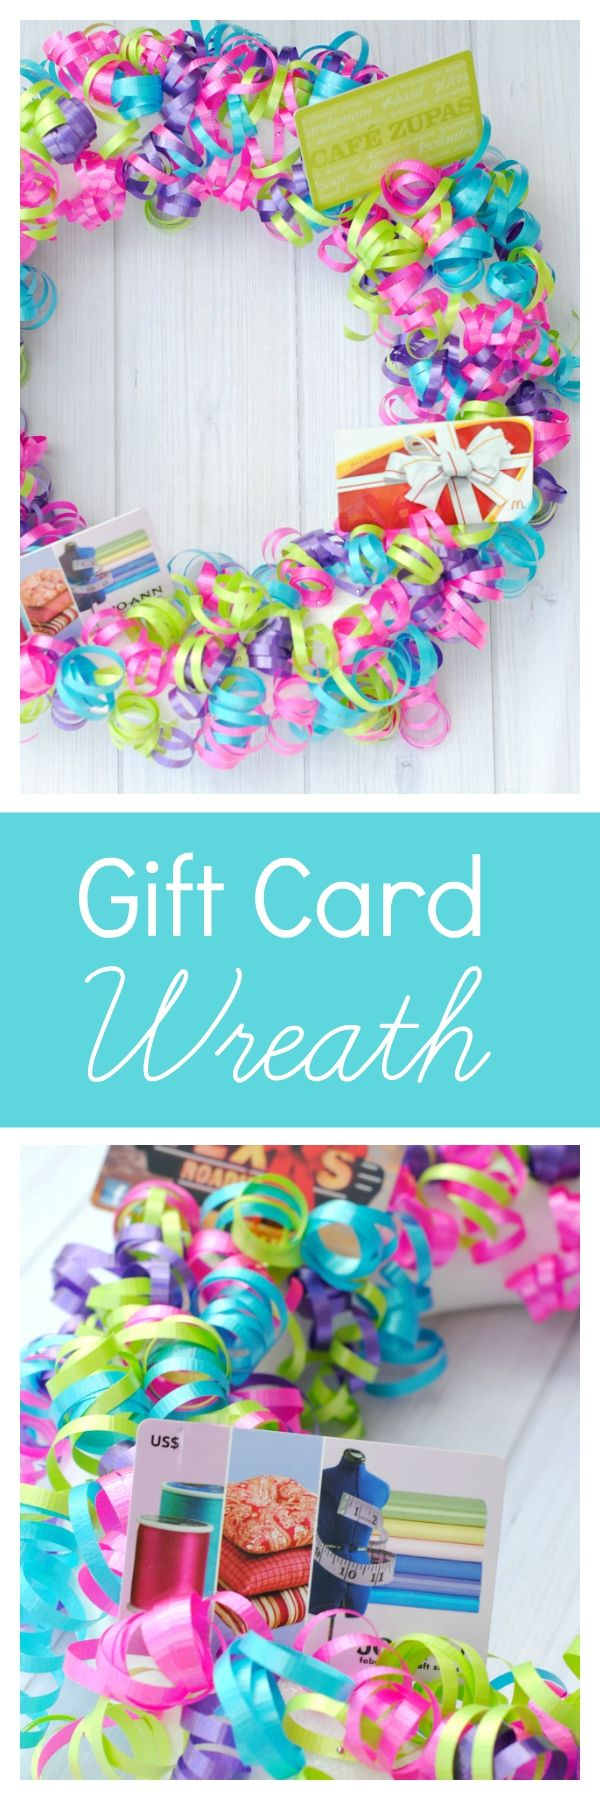 DIY Gift Idea | Make a festive wreath and fill it with gift cards!